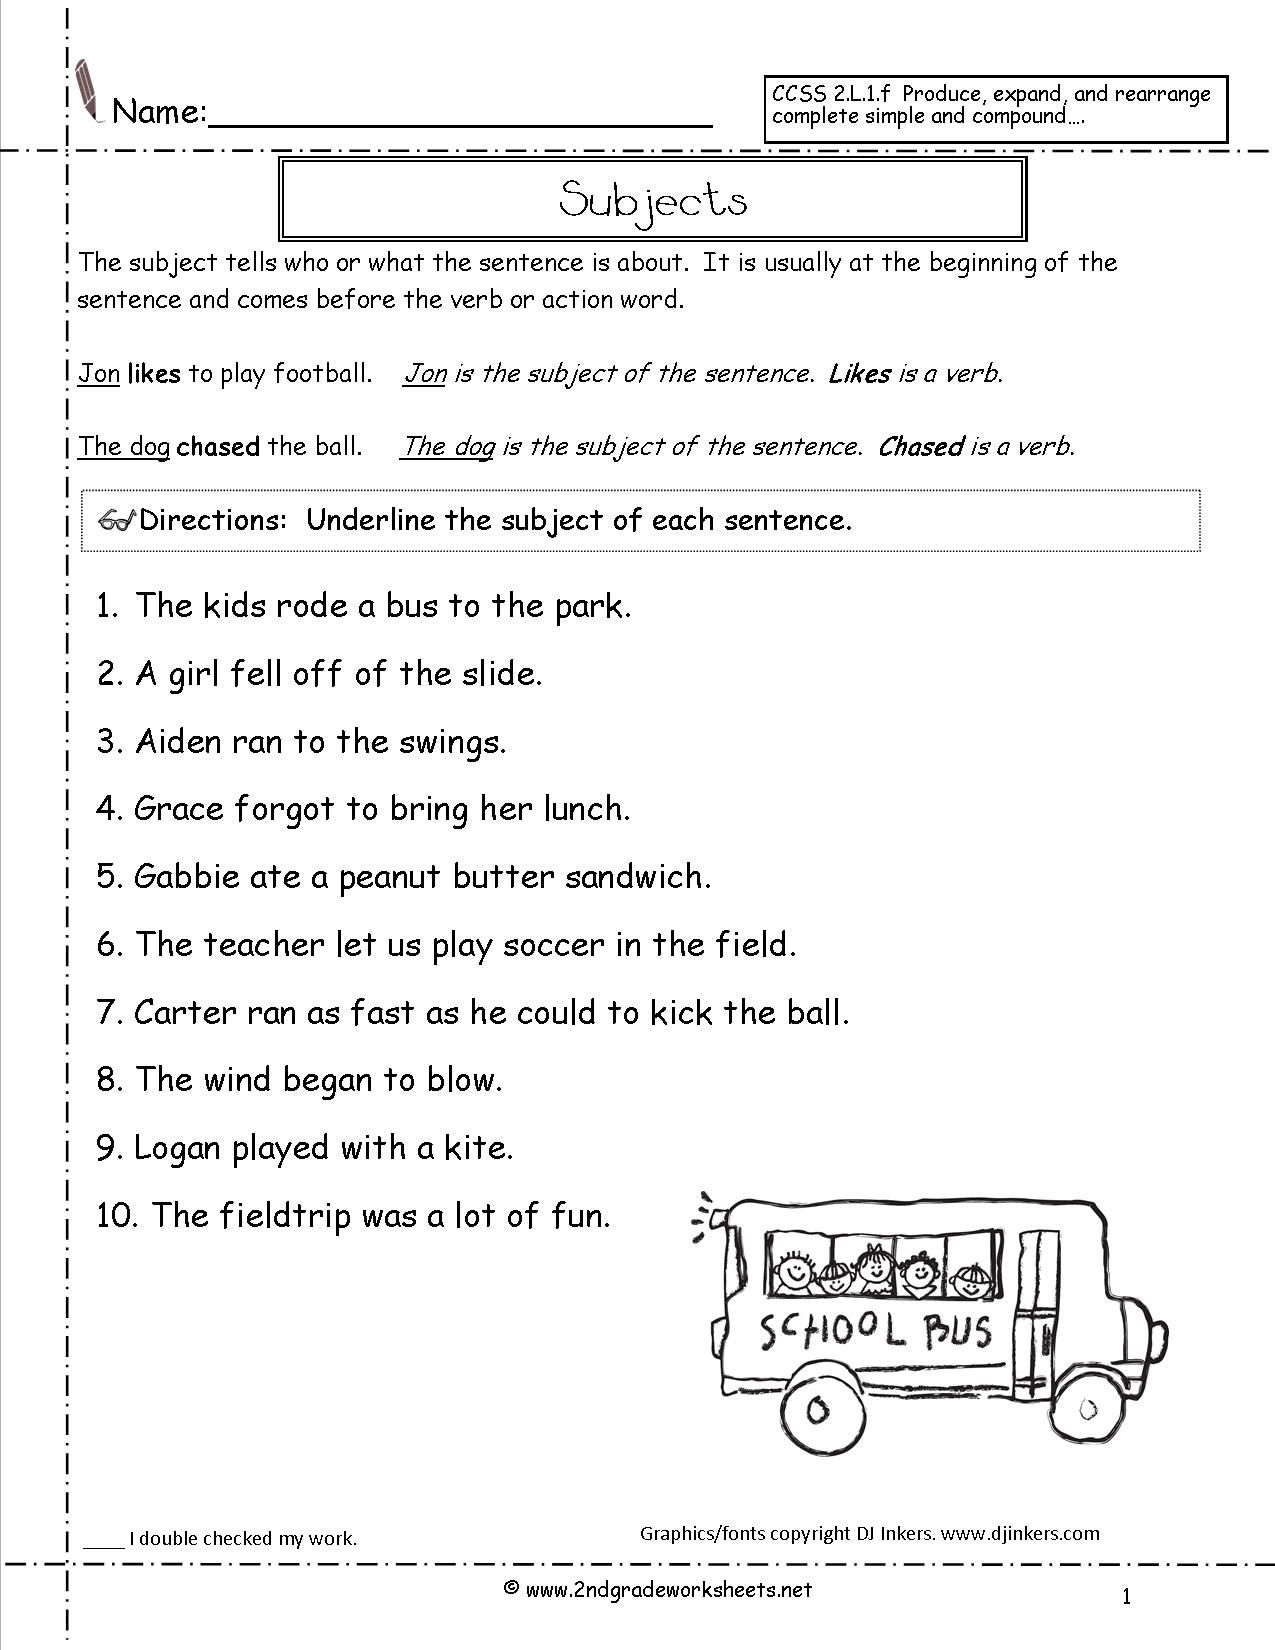 Sentences Worksheets From The Teacher S Guide Simple Subject And Predicate Subject And Predicate Worksheets Subject And Predicate